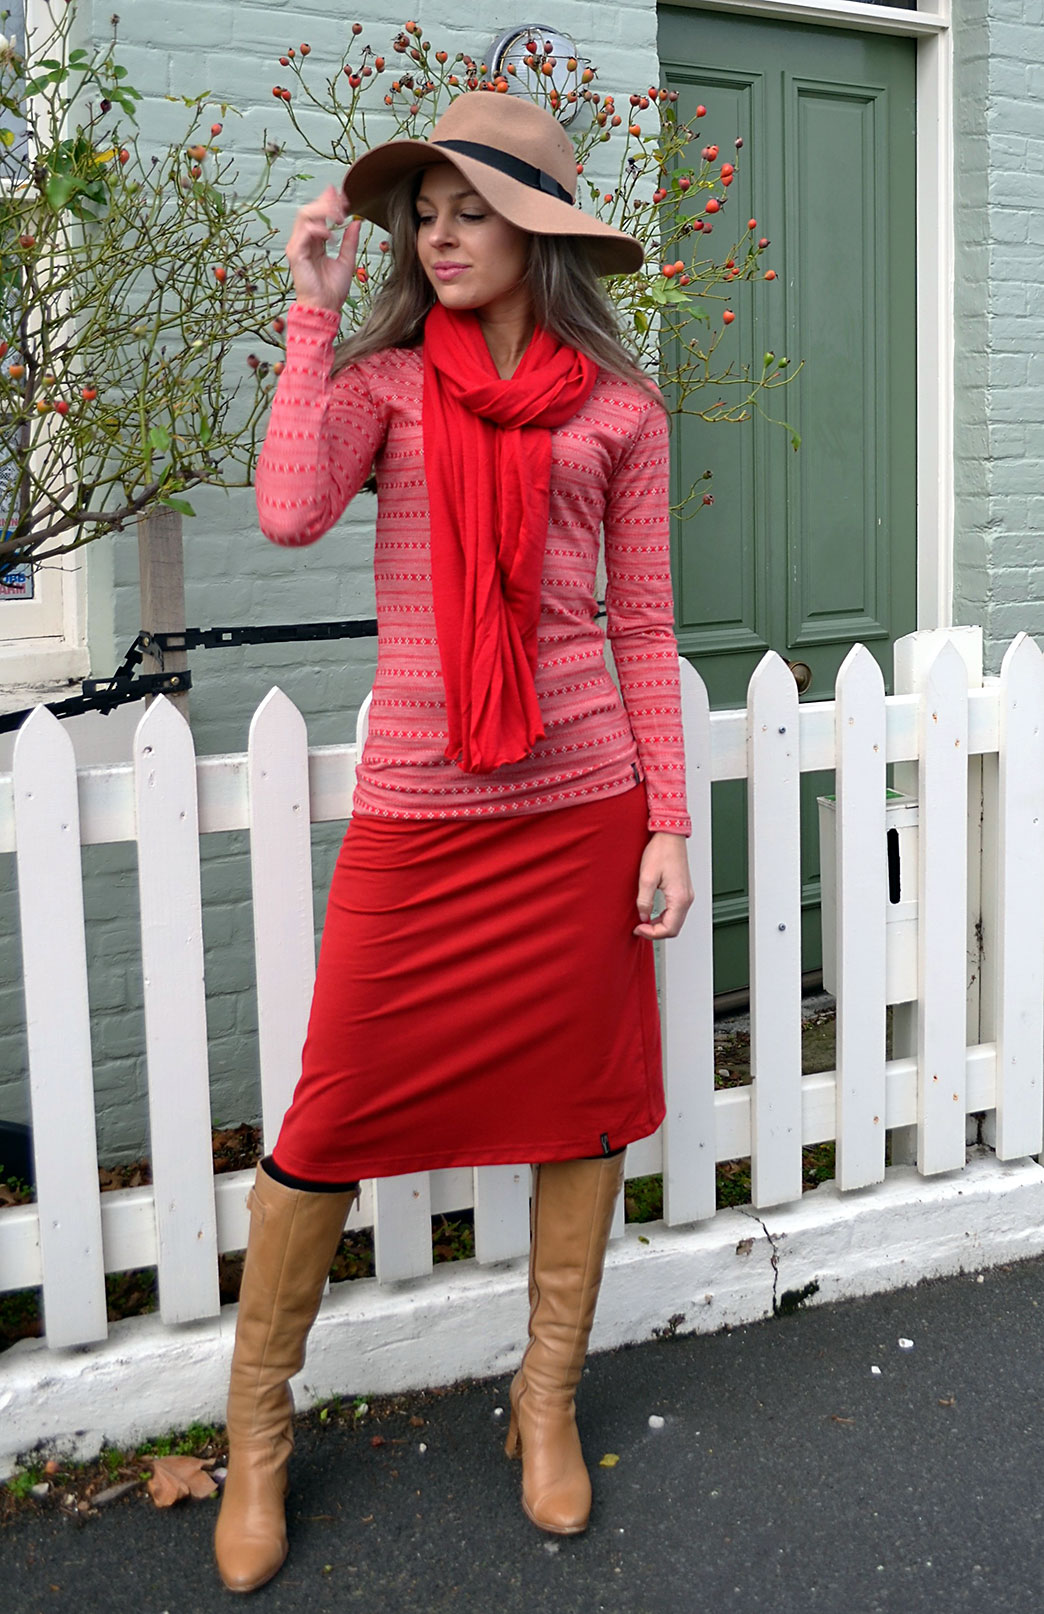 Scoop Neck Top - Patterned - Women's Red Patterned Merino Wool Long Sleeved Thermal Top with Scoop Neckline - Smitten Merino Tasmania Australia